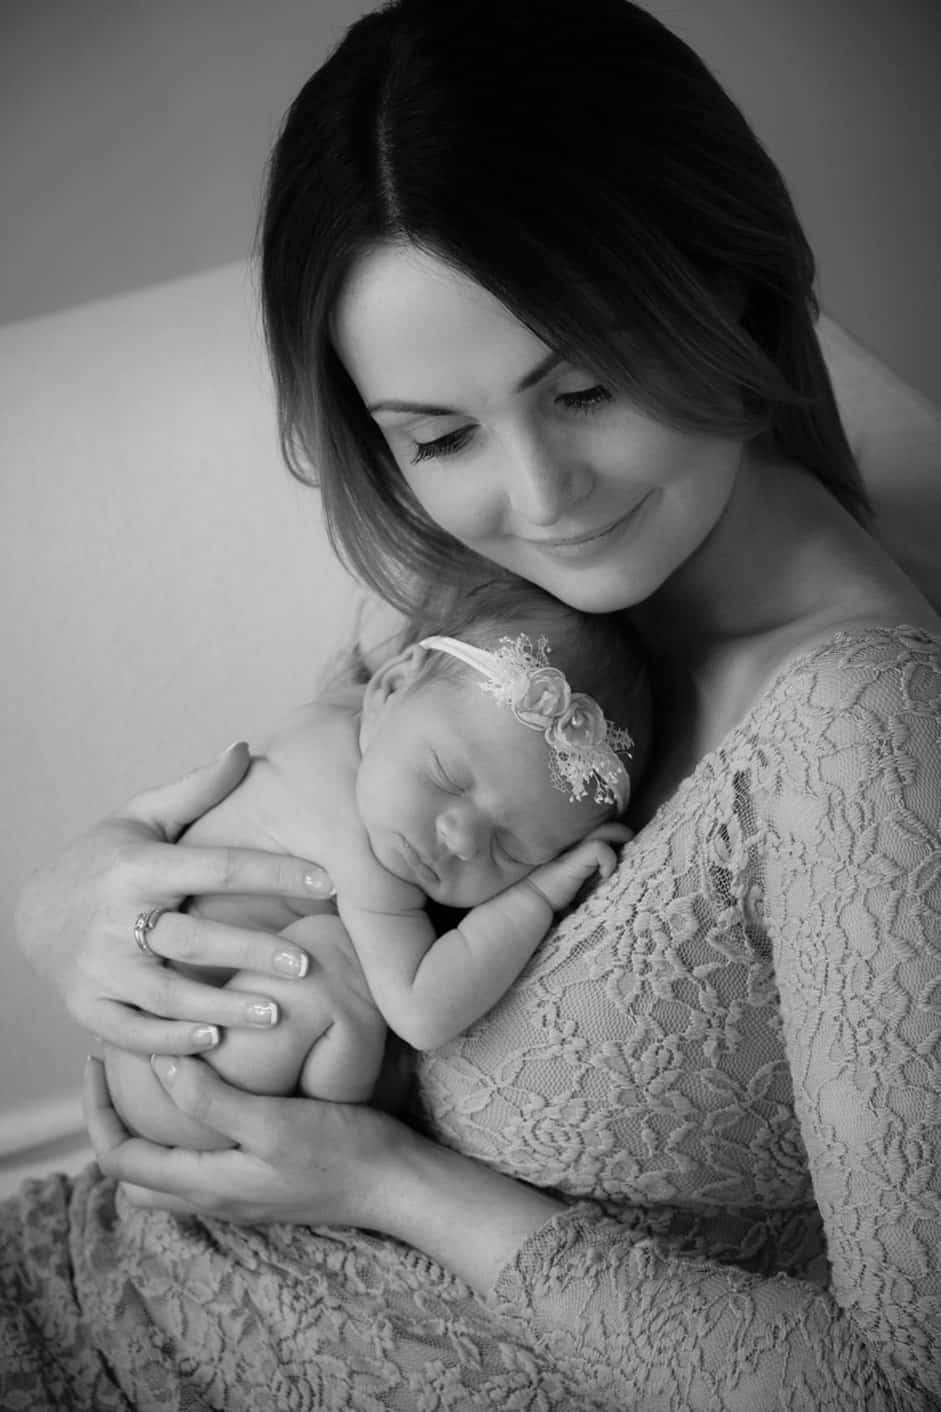 Mum and newborn during newborn photo session